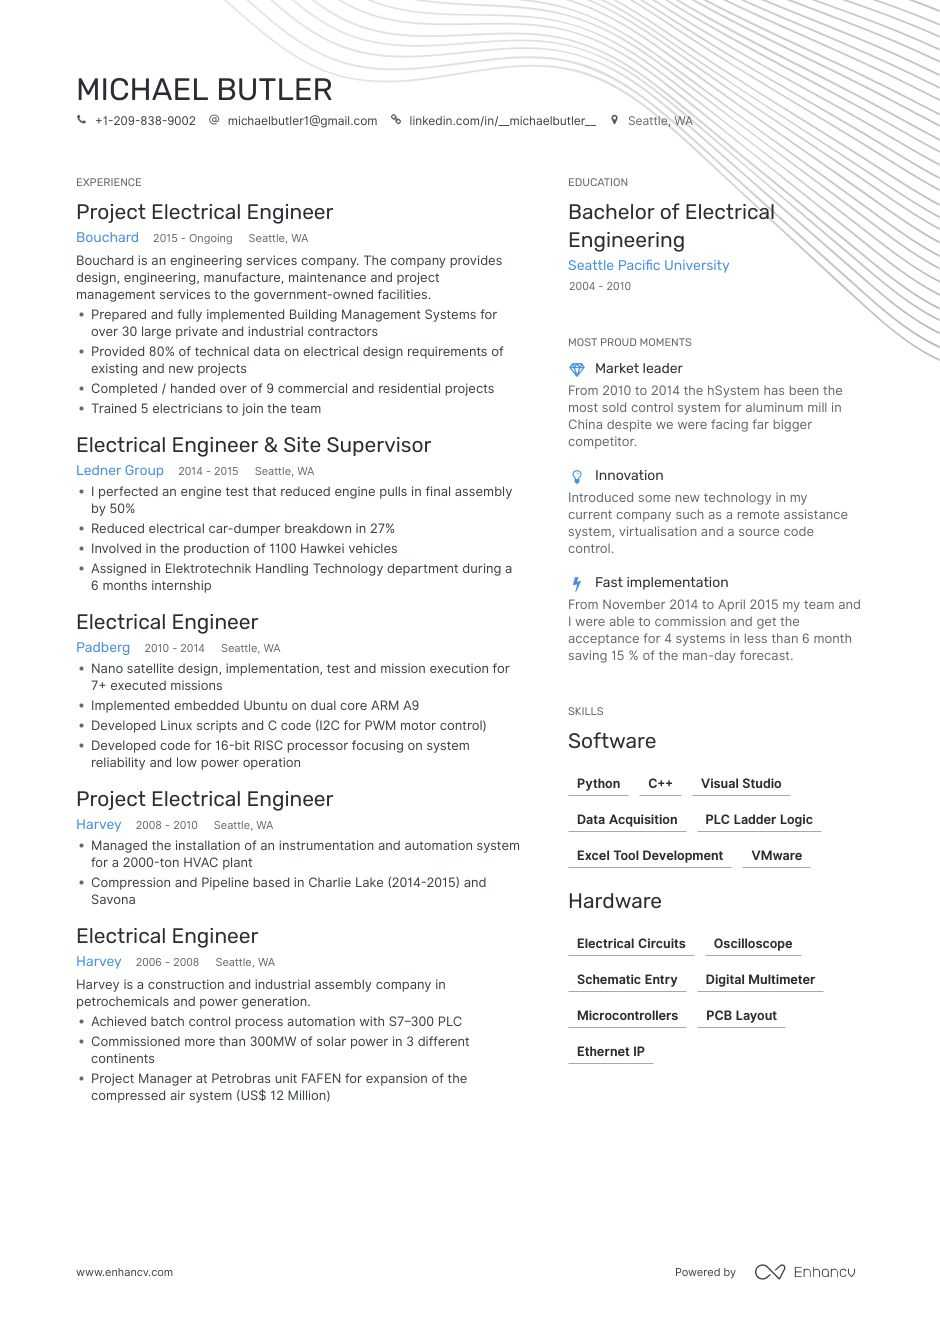 electrical engineer resume examples pro tips featured enhancv electronics quality Resume Electronics Quality Engineer Resume